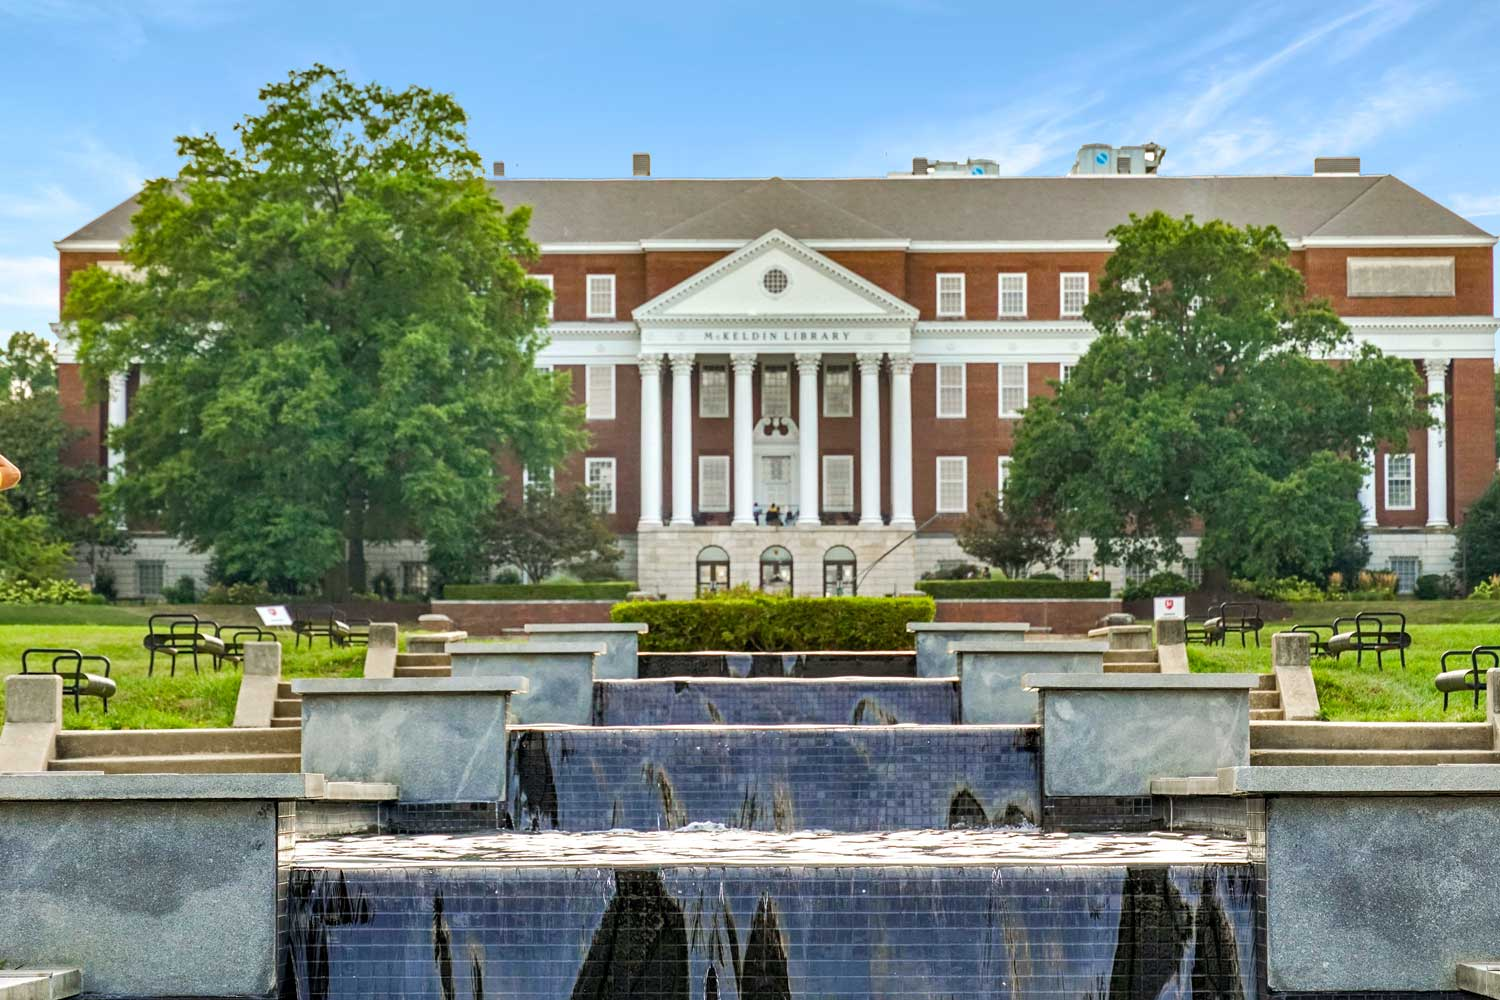 Easy commute to University of Maryland, College Park from Heritage Square Apartments